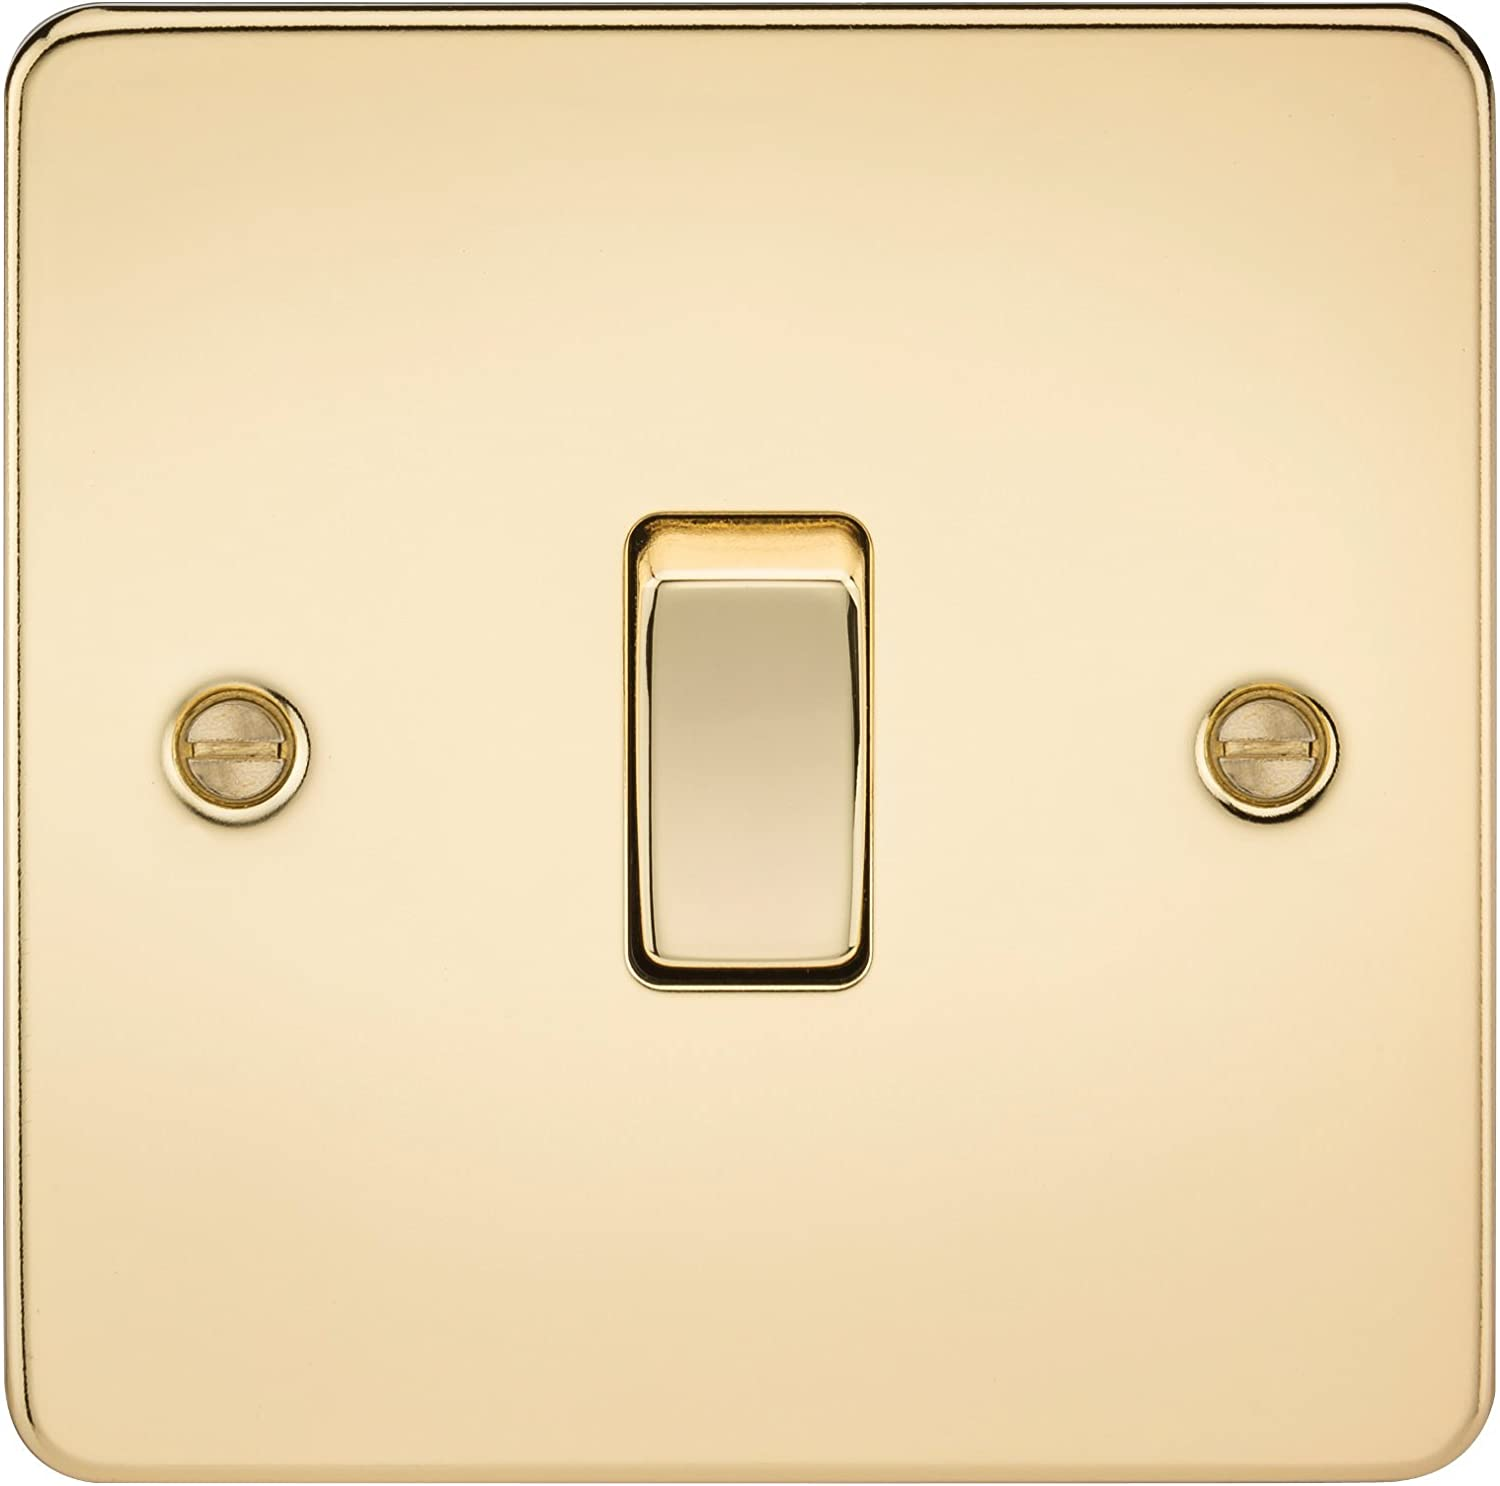 230 V Knightsbridge FP6300NBB Brushed Brass FPAV6300NBB Flat Plate 13A Switched Fused Spur Unit with Neon